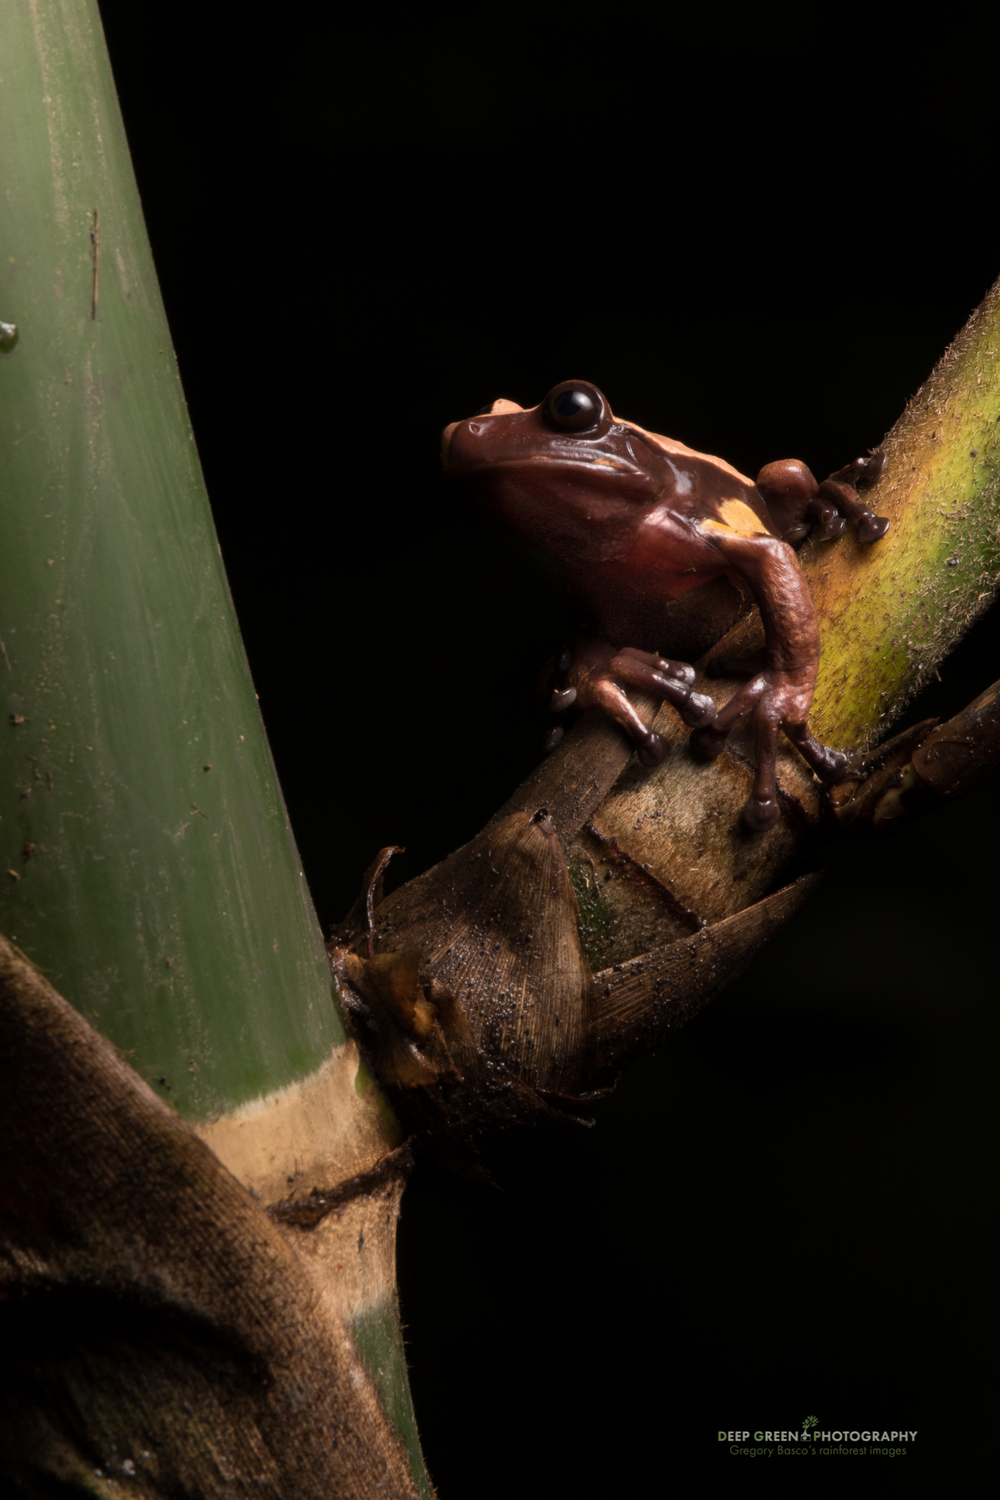 A very rare Chocolate frog in Ecuador. This species spends its entire leaf inside and around native bamboo stems.